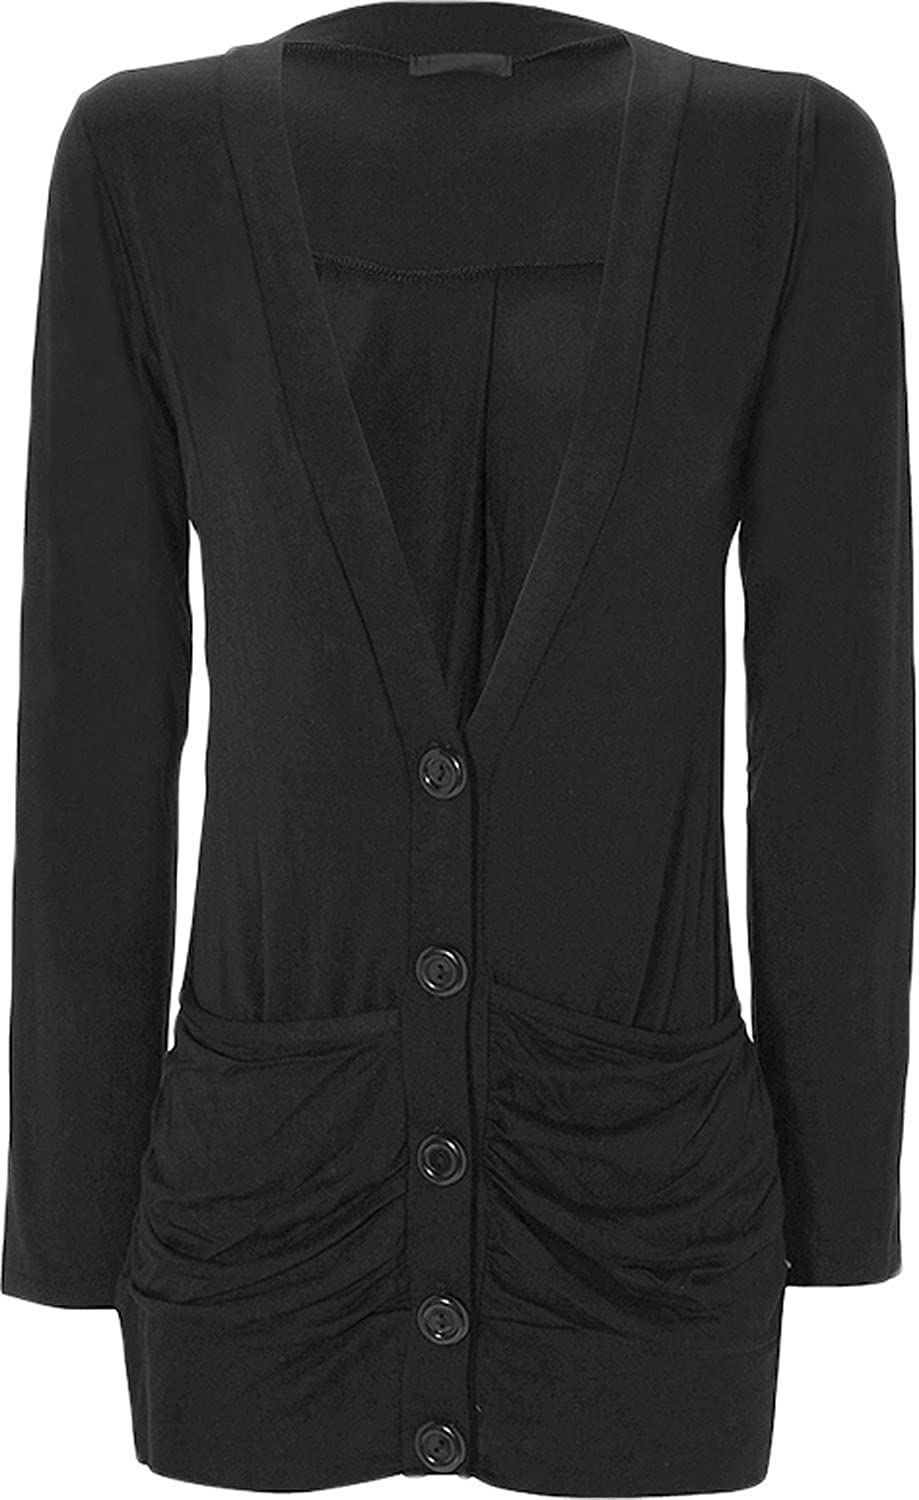 Women's Stretch Long Sleeve Button up Ladies Pocket Cardigan Top